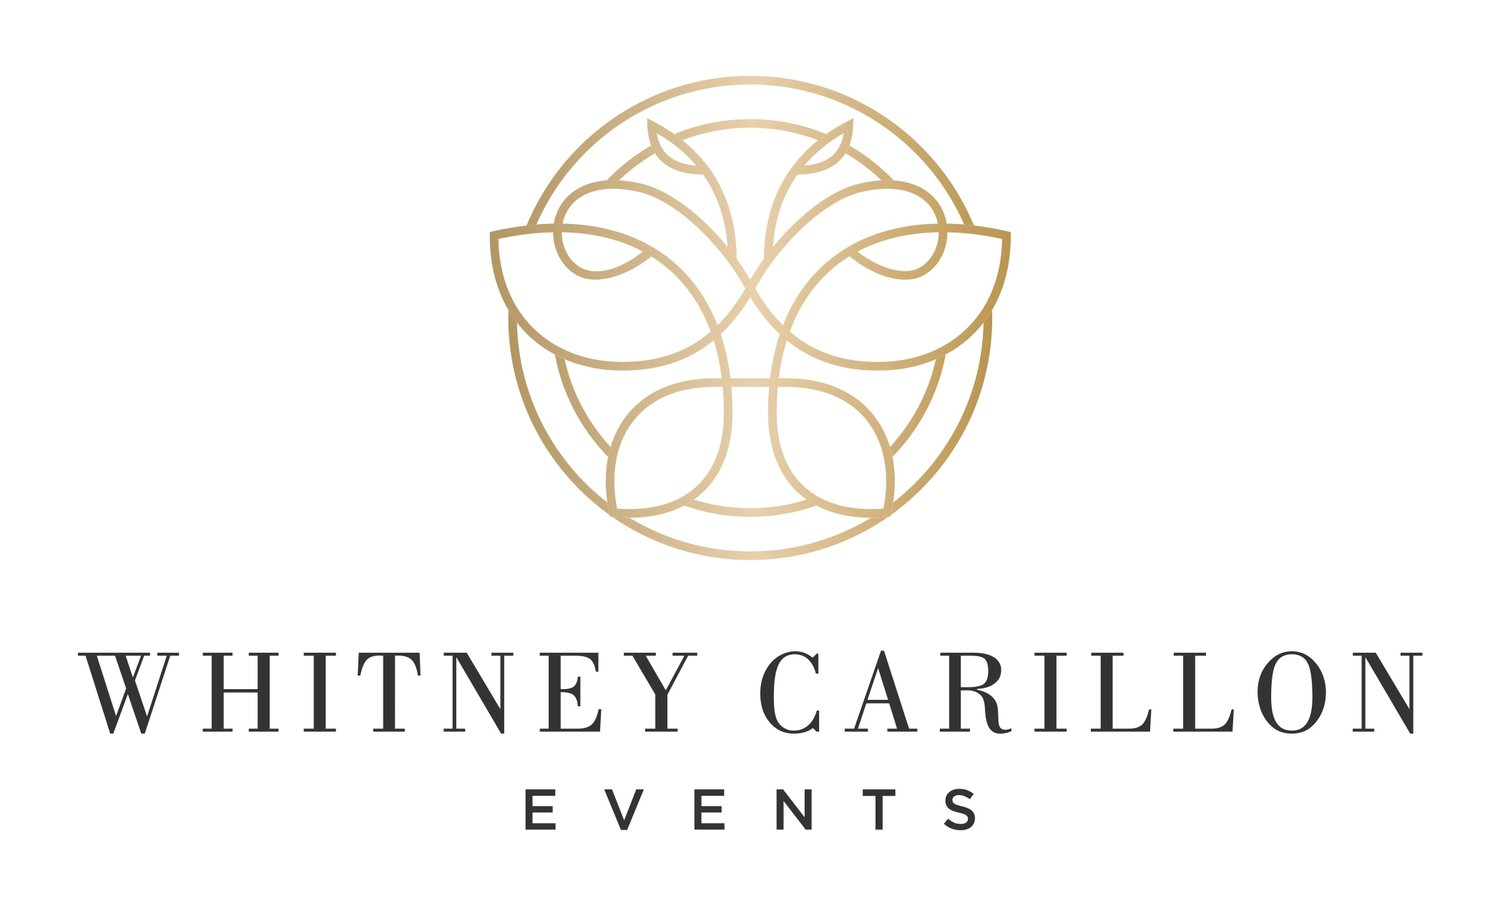 Whitney Carillon Events